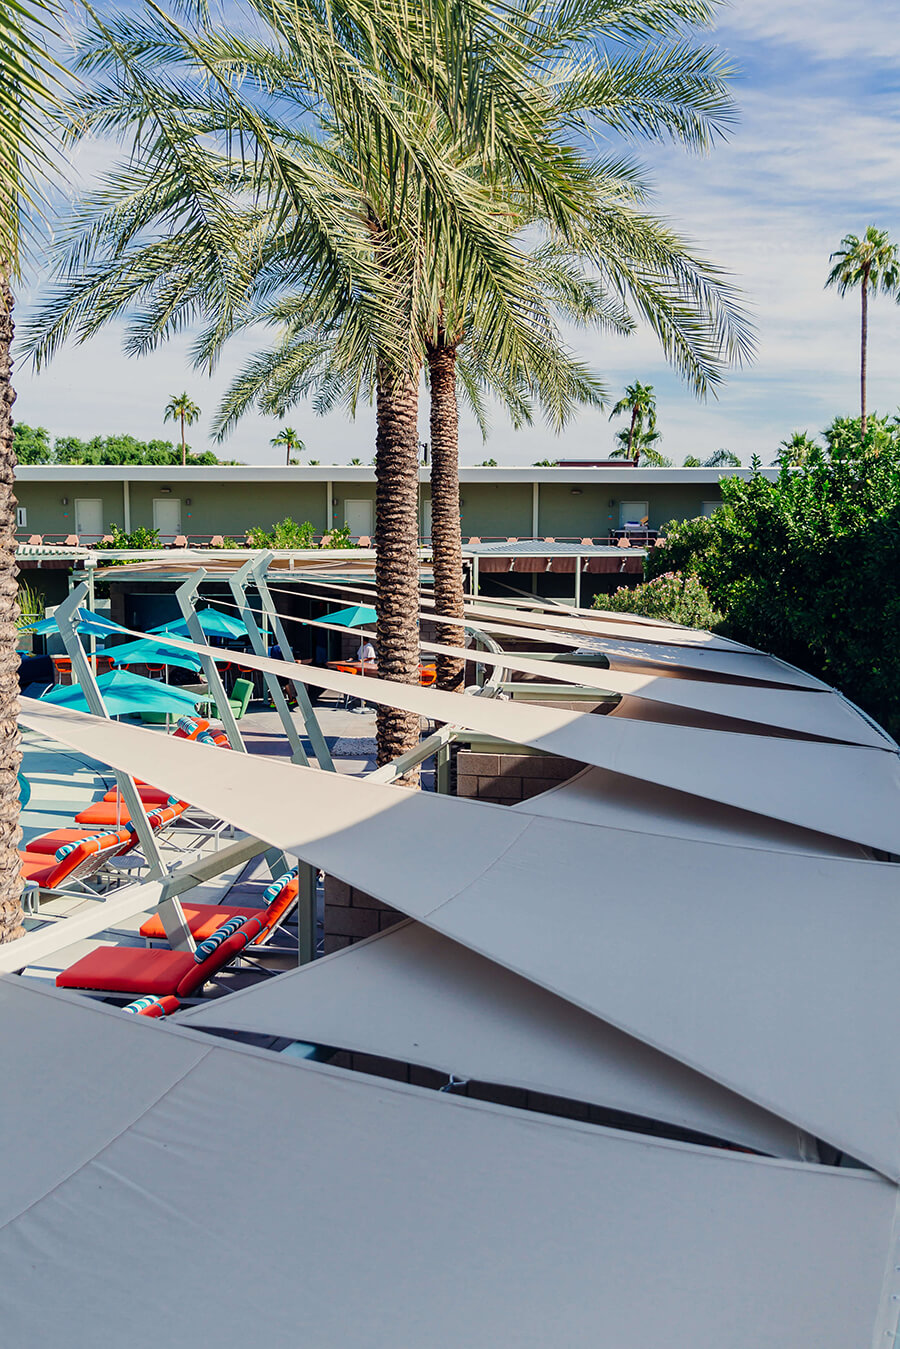 Shade sail with beige Sunbrella Contour fabric installed at hotel pool with palm trees in background